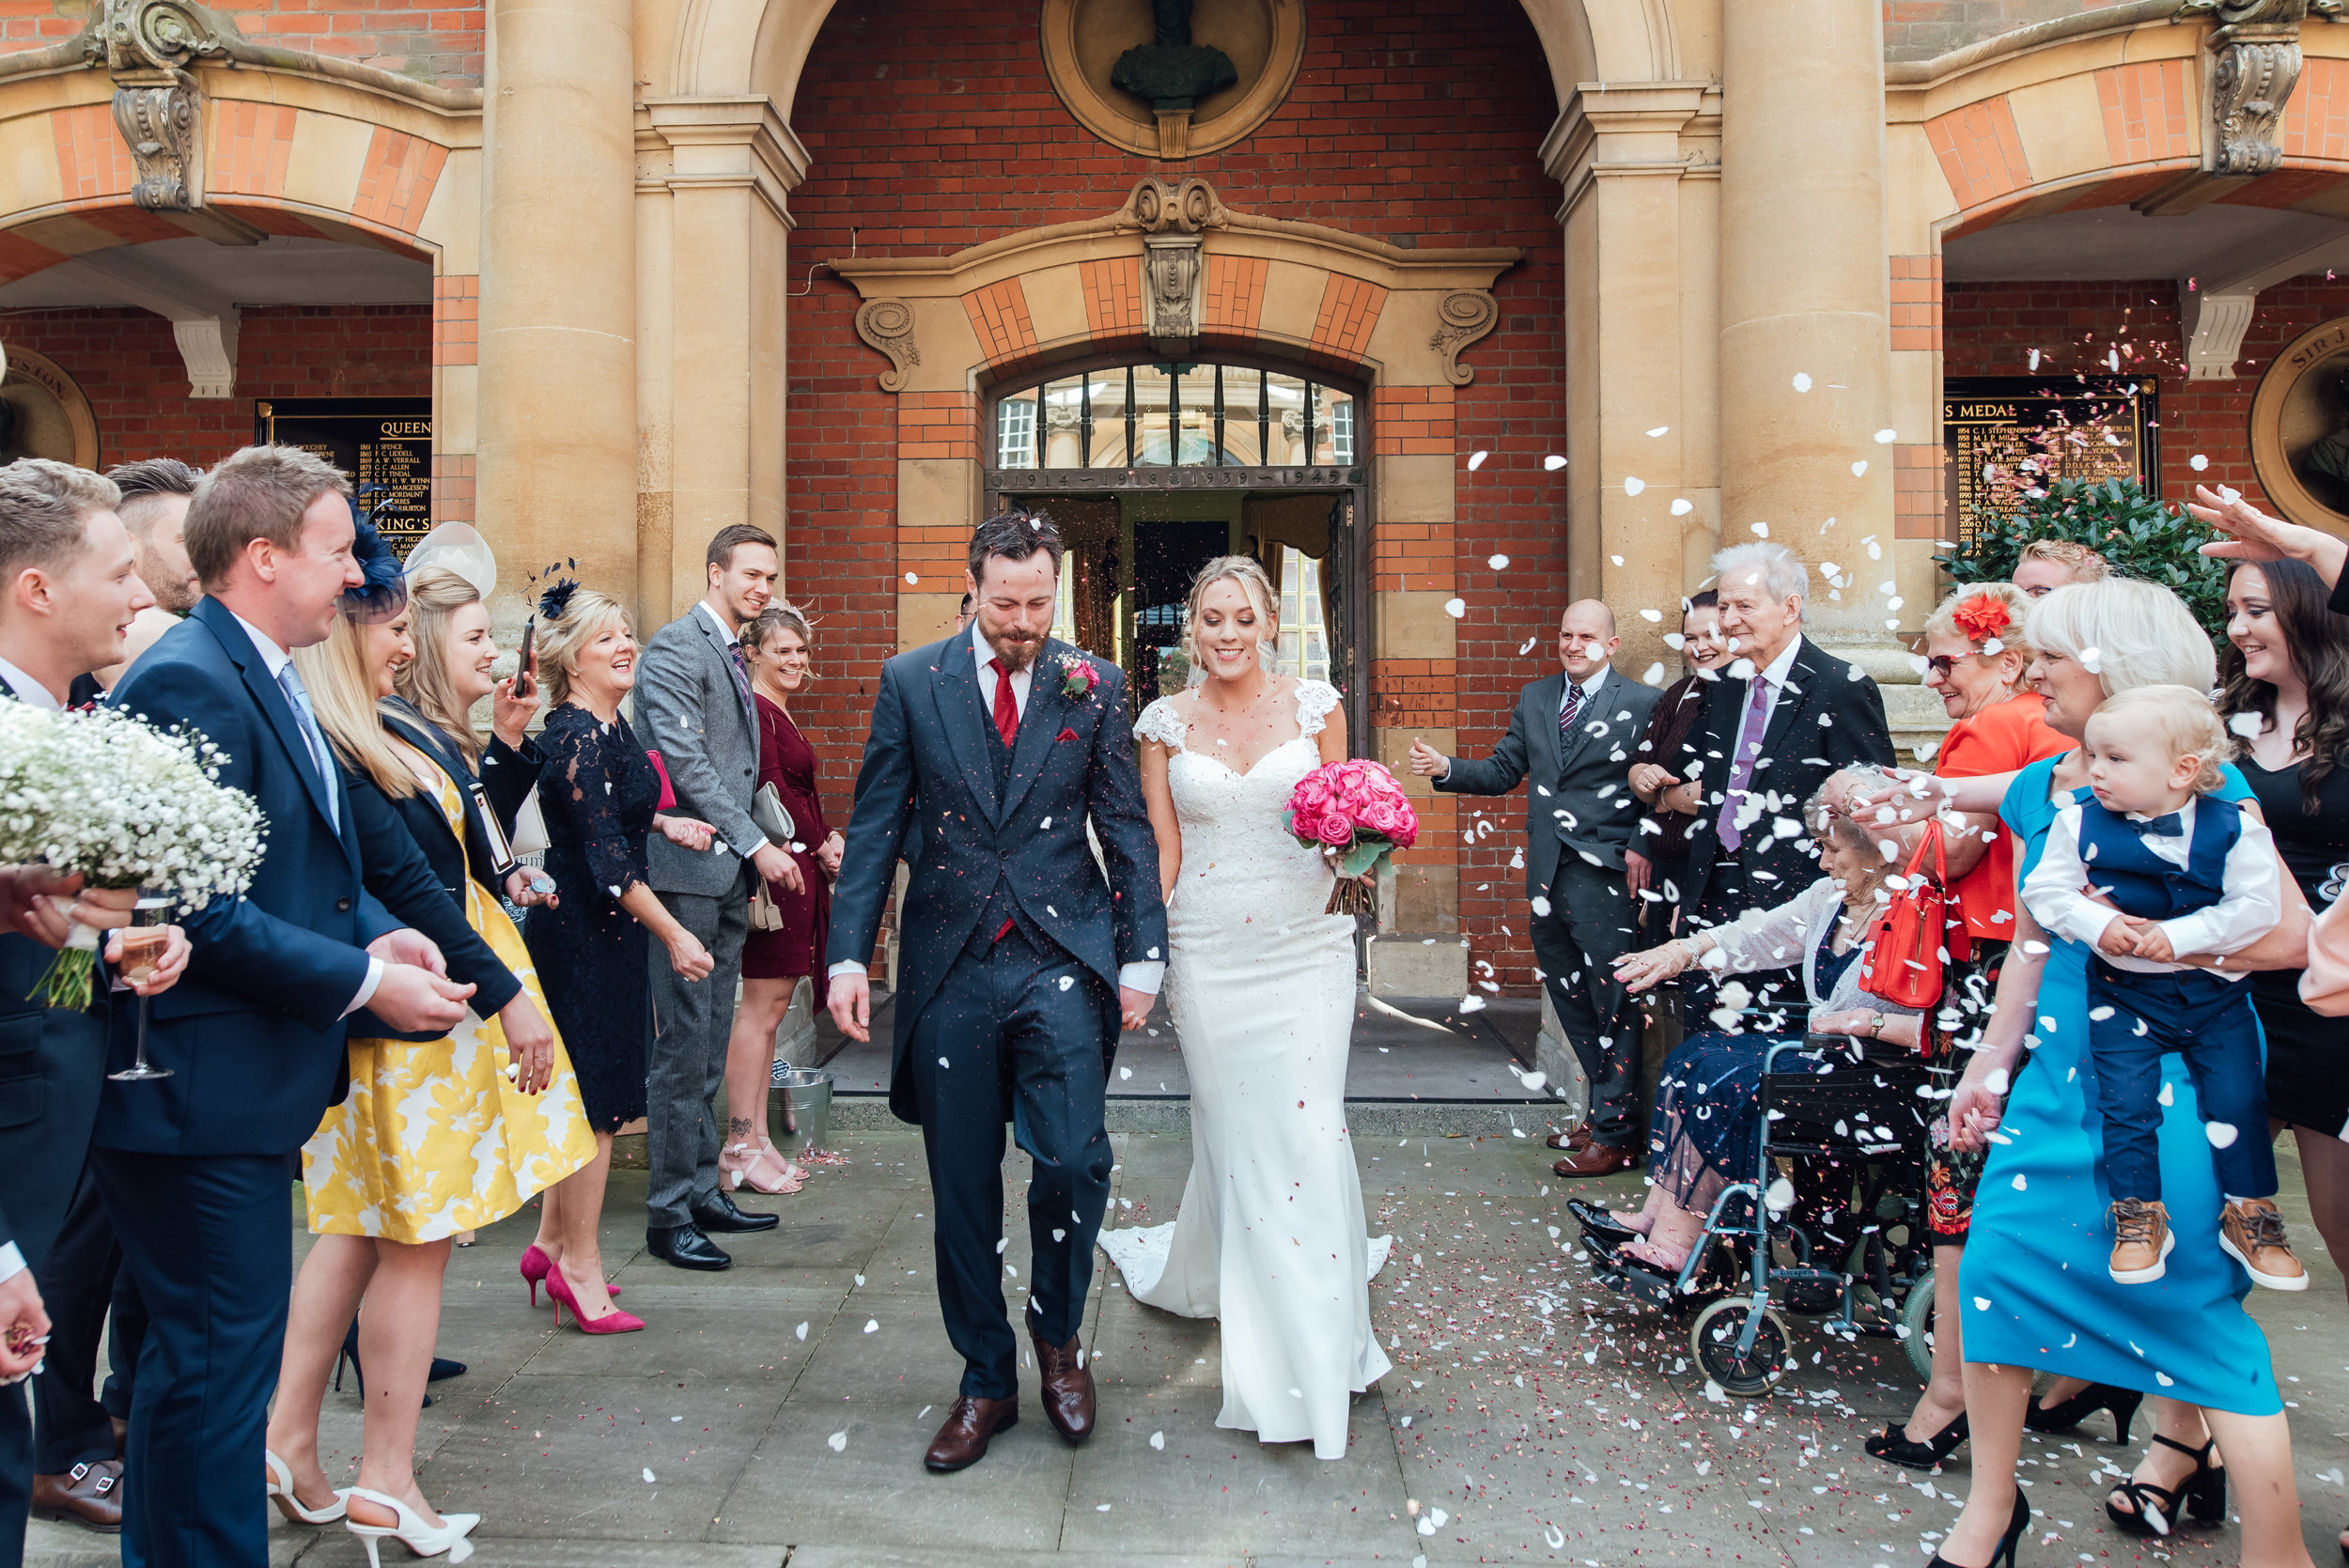 Hampshire-wedding-photographer-hampshire / Amy-james-photography / fleet-wedding-photographer / fleet-photographer-farnborough / documentary-wedding-photographer / Hampshire-wedding-venue / wellington-college-wedding-berkshire